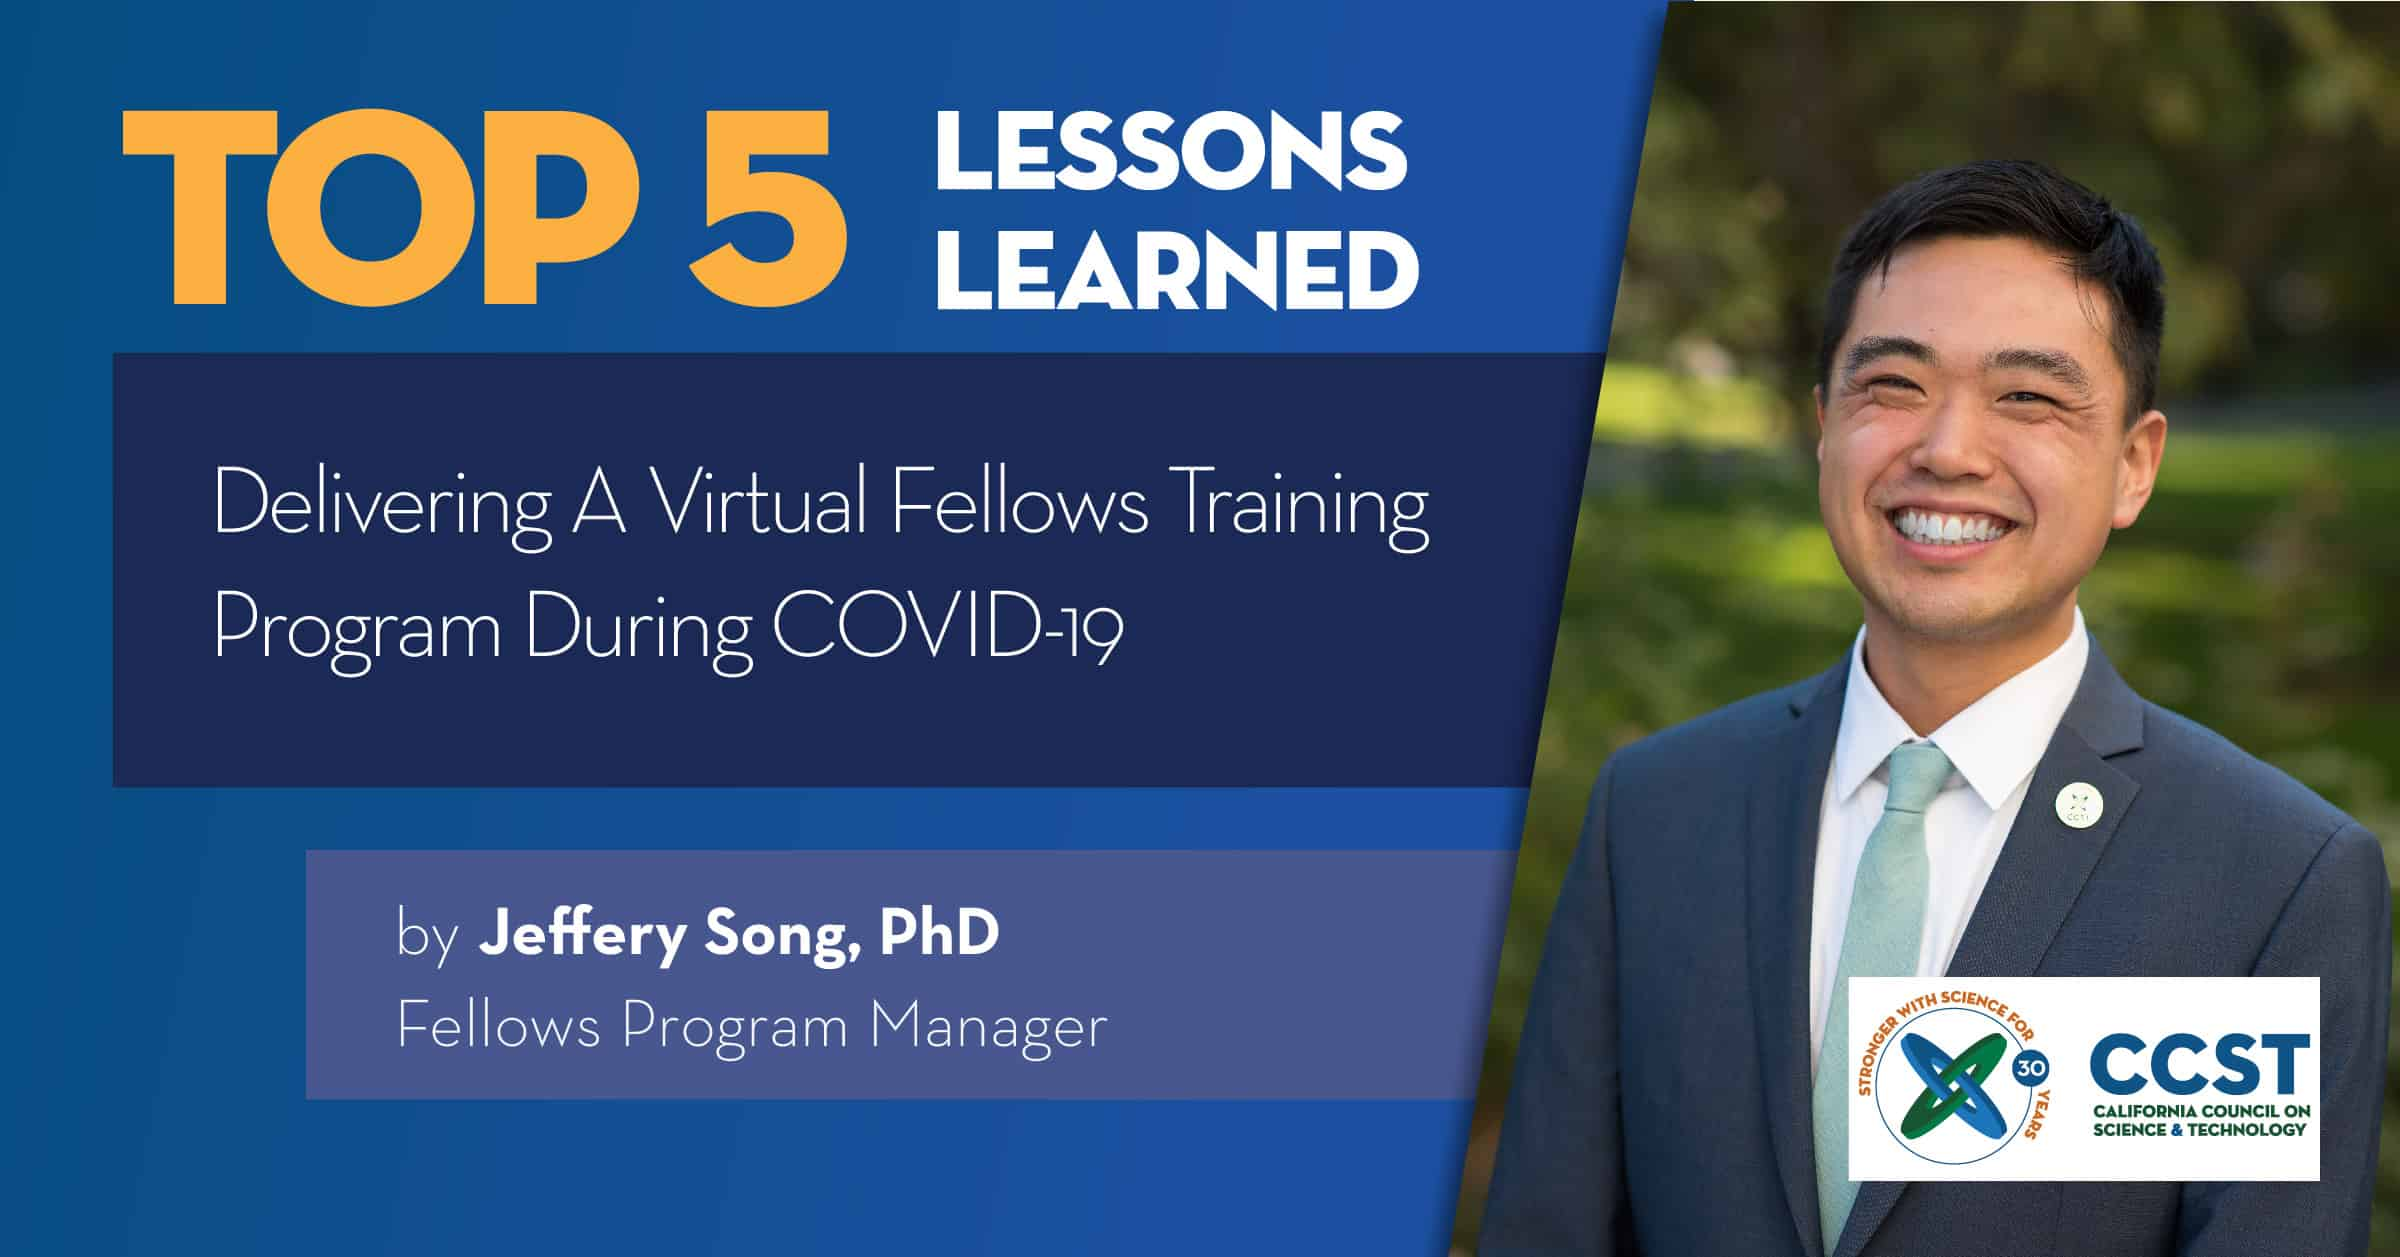 Title Card Top 5 Lessons Learned with photo of Jeffery Song